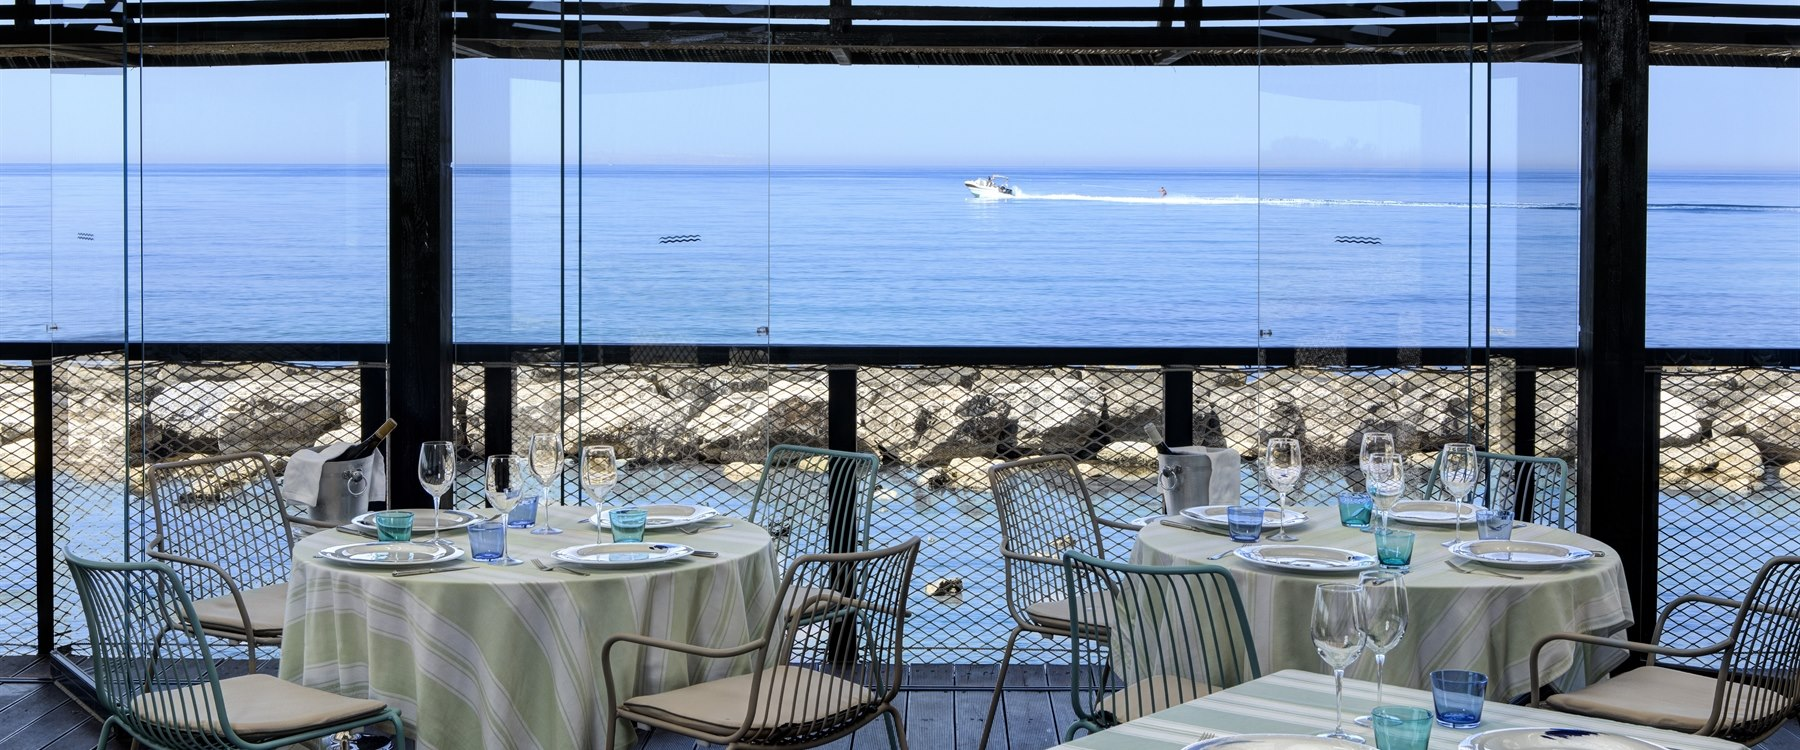 Amare restaurant at Verdura Resort, Sicily